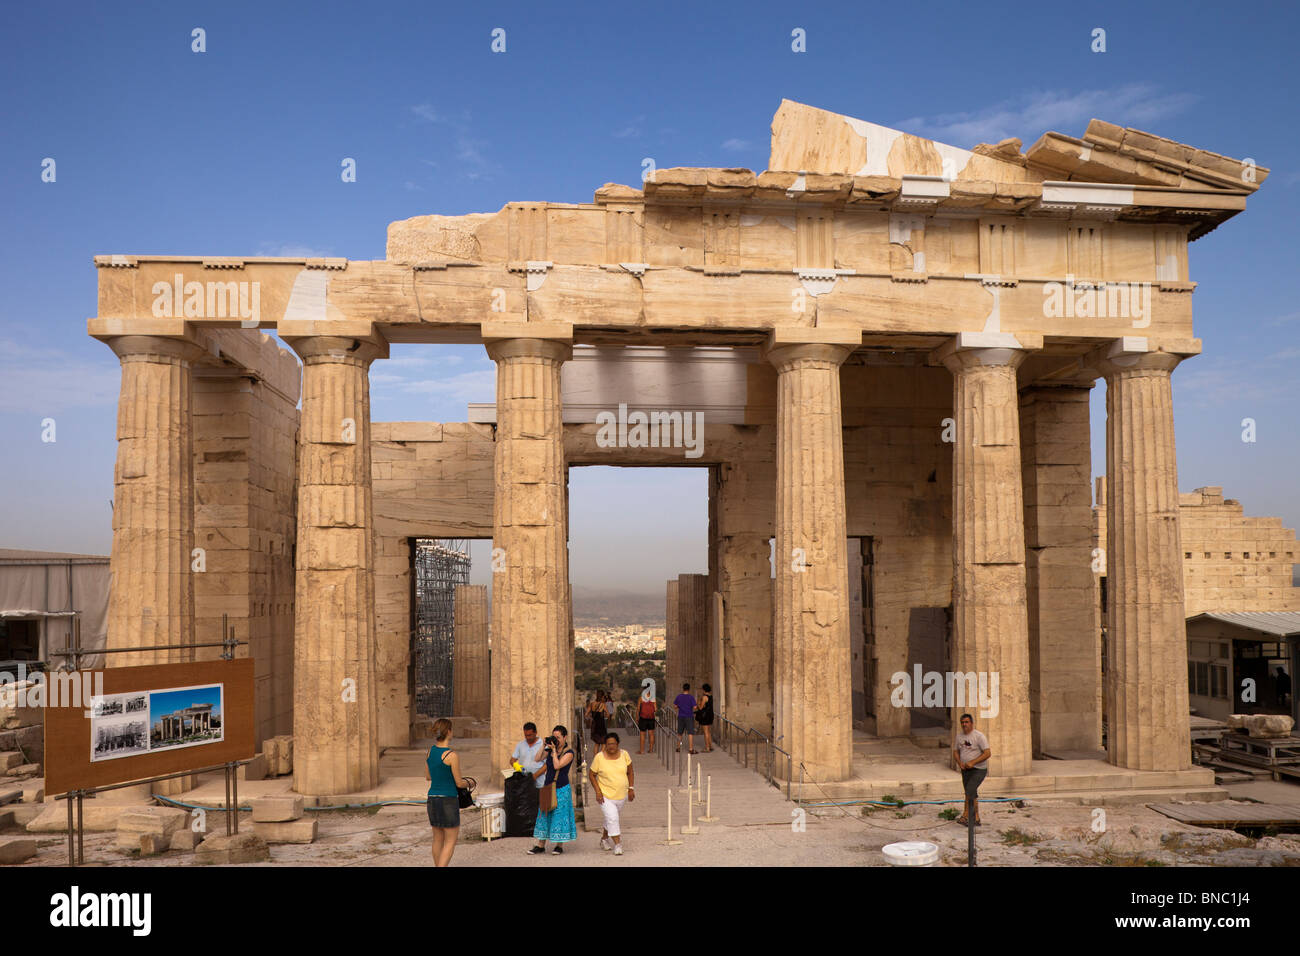 The Propylaea of the Athenian acropolis after renovation was completed in 2010. Viewed from the east. Stock Photo